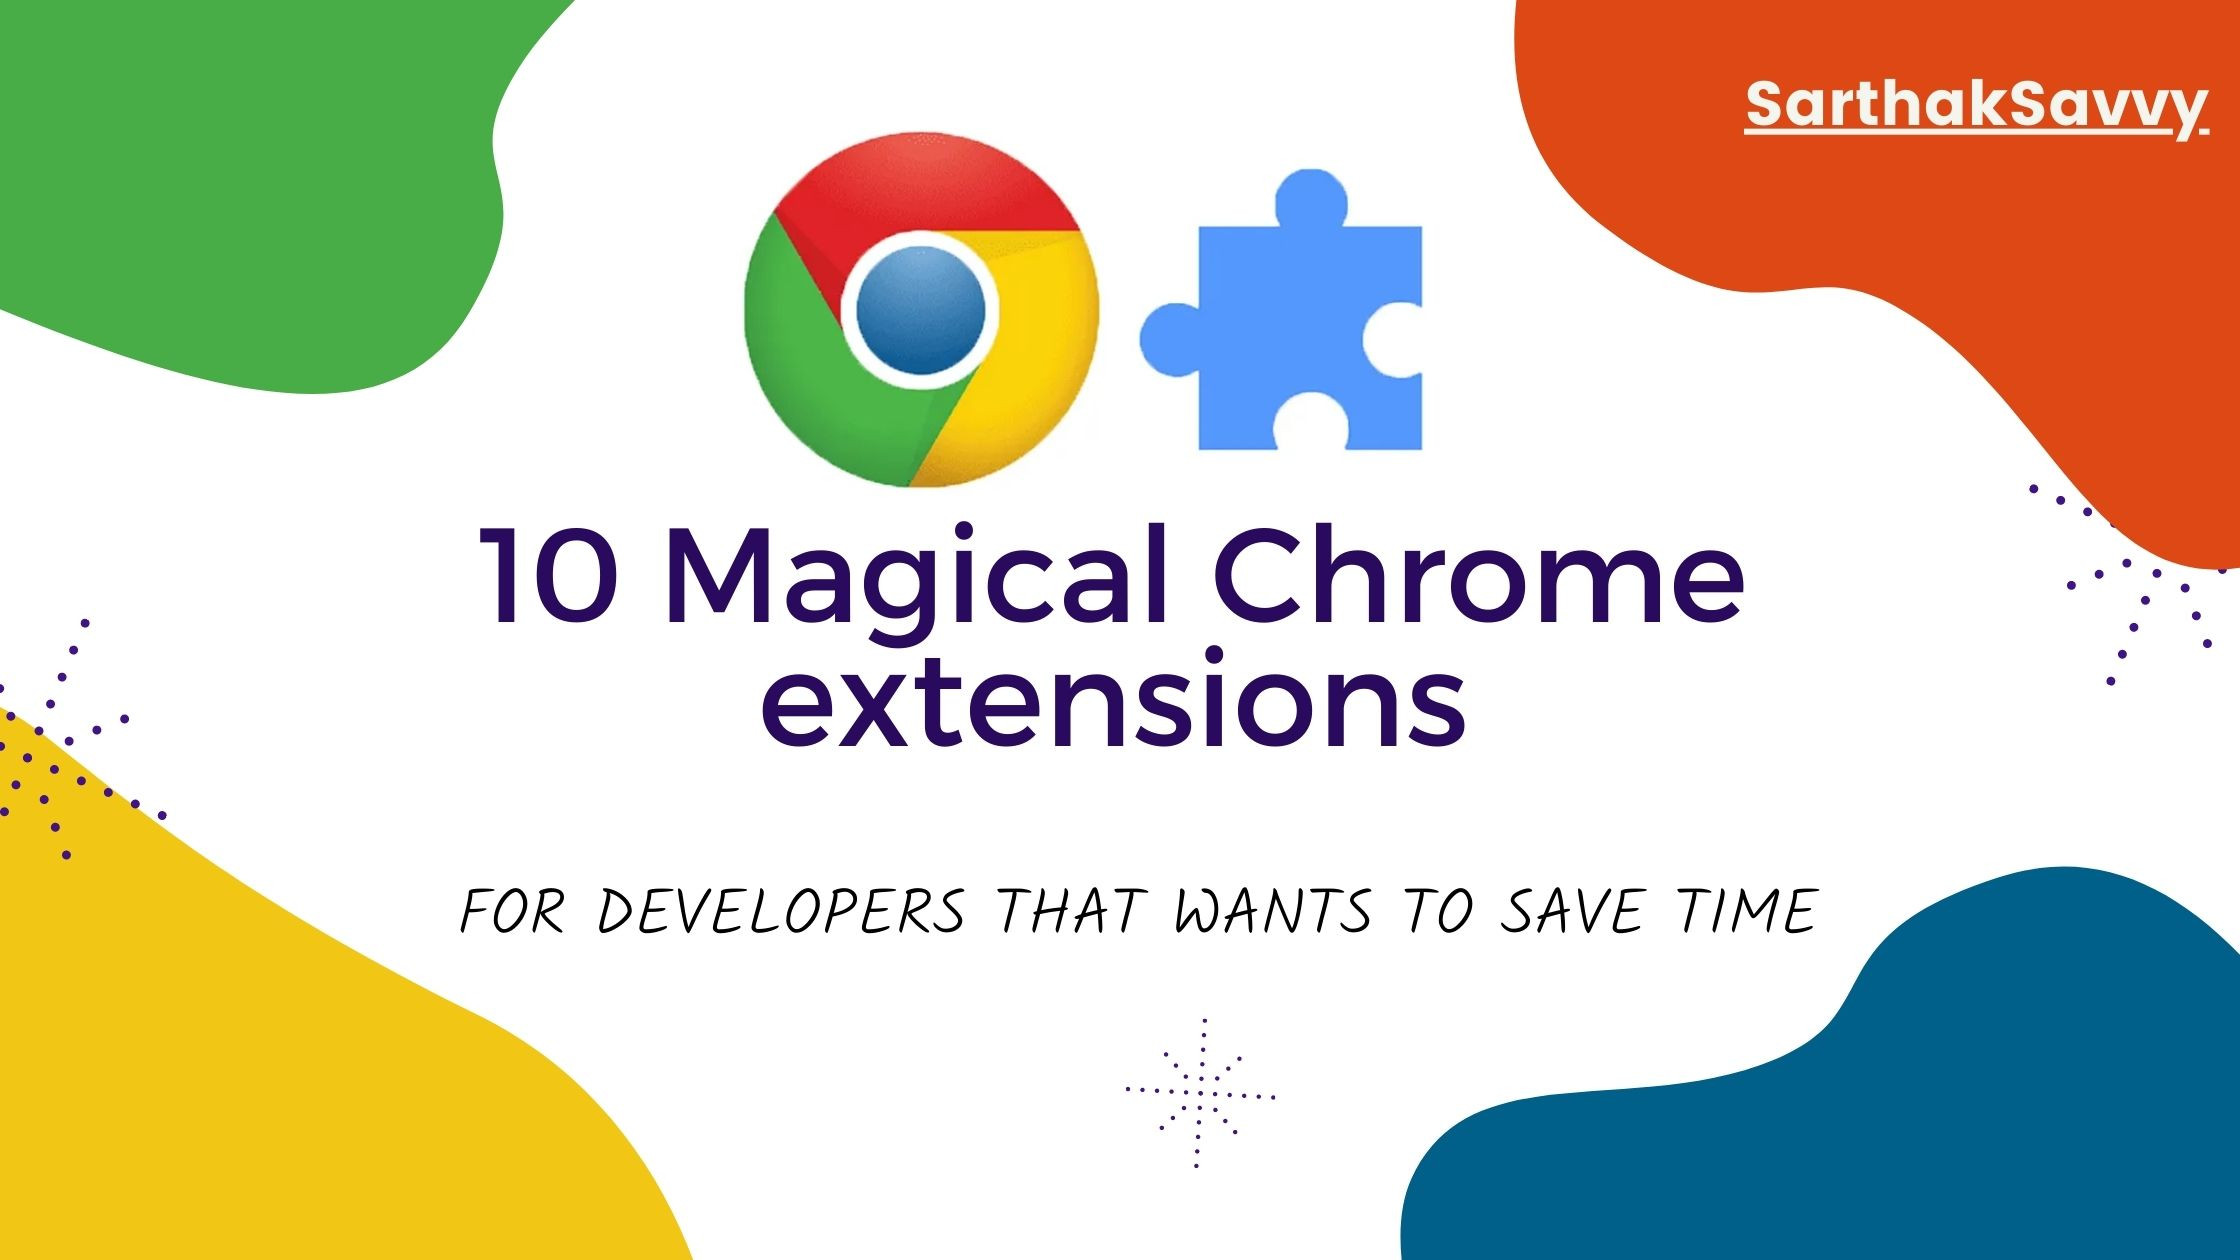 10 magical Chrome extensions for developers